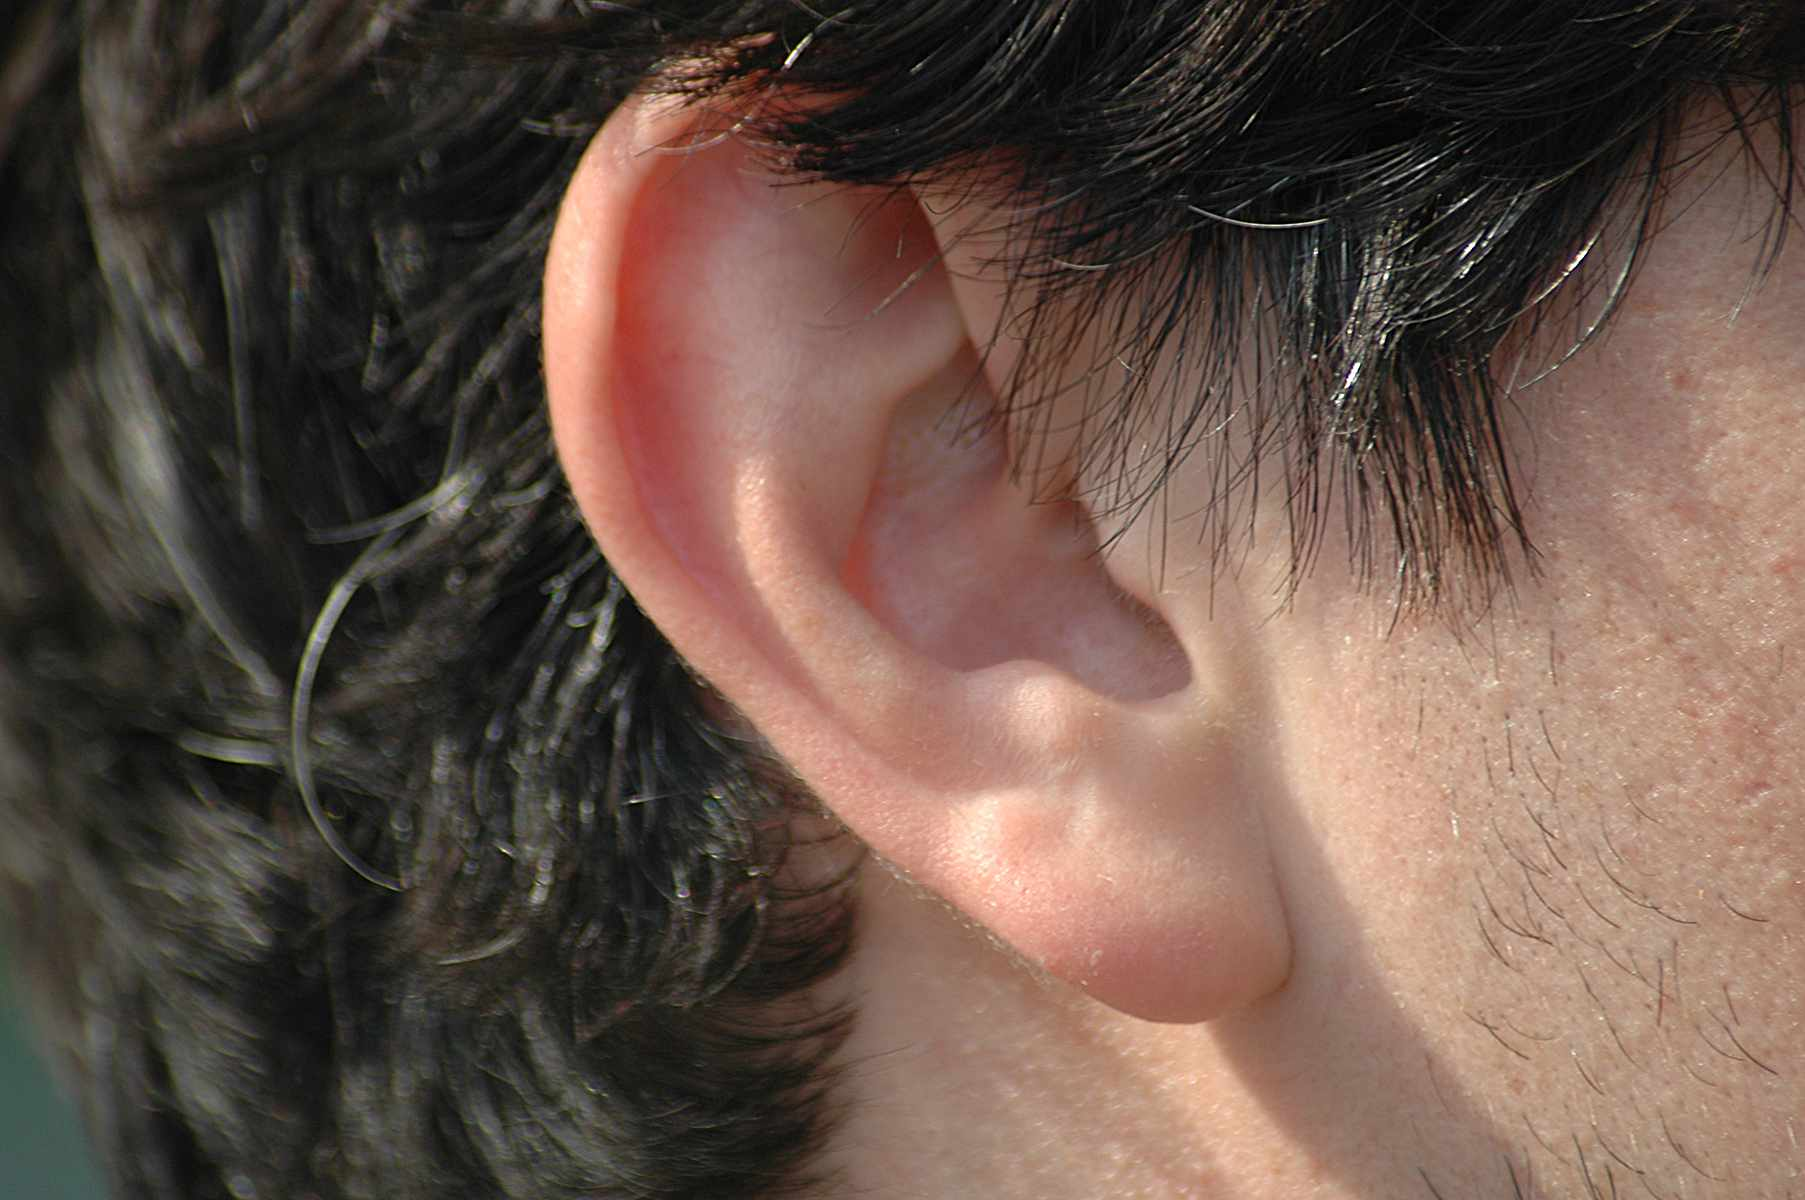 A white-presenting person's earlobe under a head of short, black and gray hair